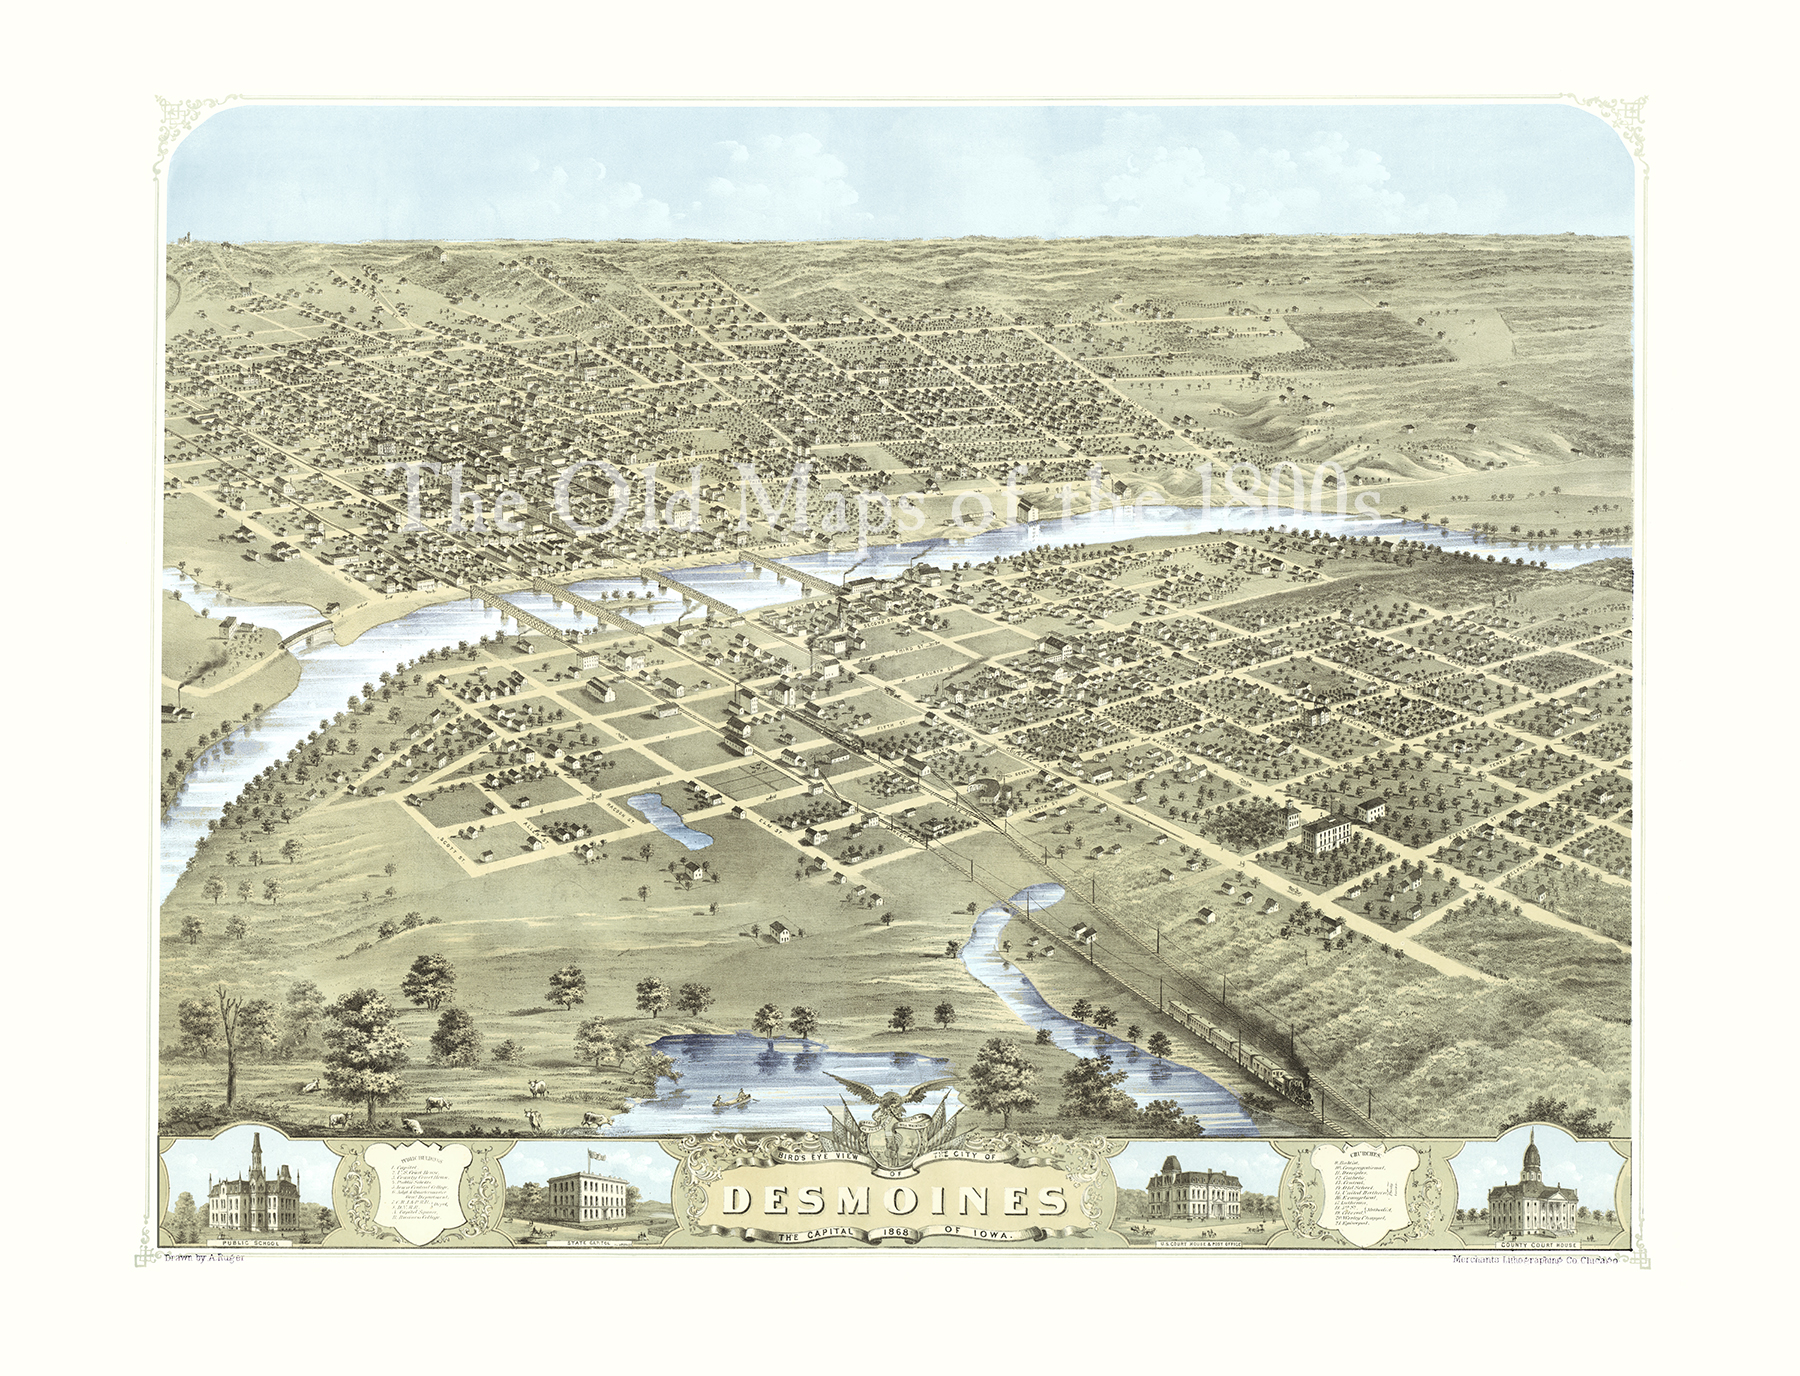 Des Moines, Iowa in 1868 - Bird\'s Eye View Map, Aerial map, Panorama,  Vintage, Antique, Reproduction, Giclée, Fine Art, Wall Art, History from  The ...